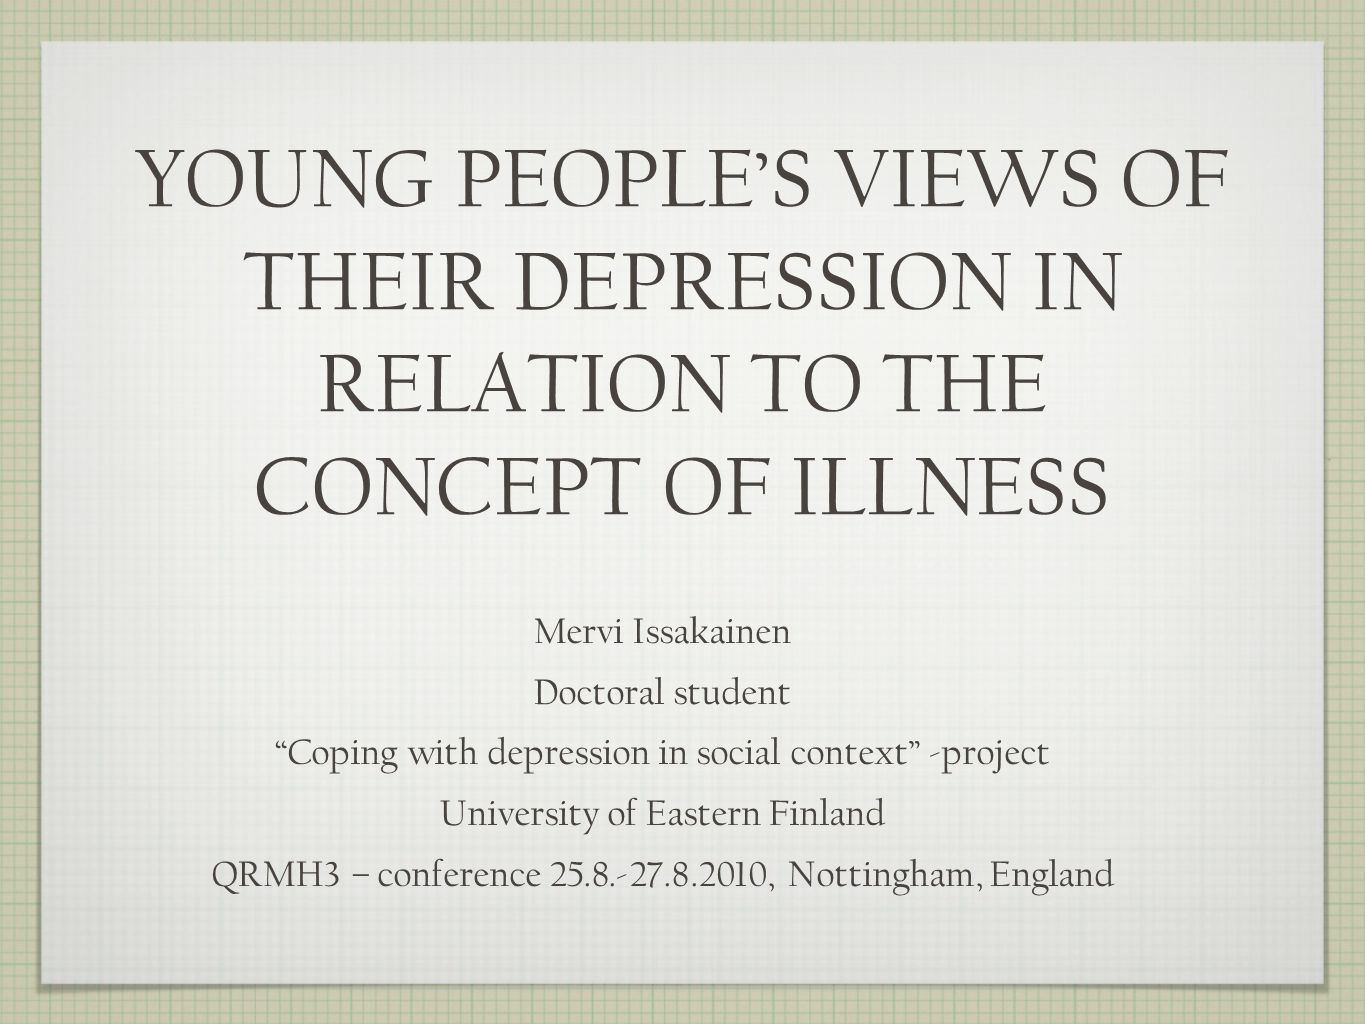 YOUNG PEOPLES VIEWS OF THEIR DEPRESSION IN RELATION TO THE CONCEPT OF ILLNESS Mervi Issakainen Doctoral student Coping with depression in social context -project University of Eastern Finland QRMH3 – conference 25.8.-27.8.2010, Nottingham, England